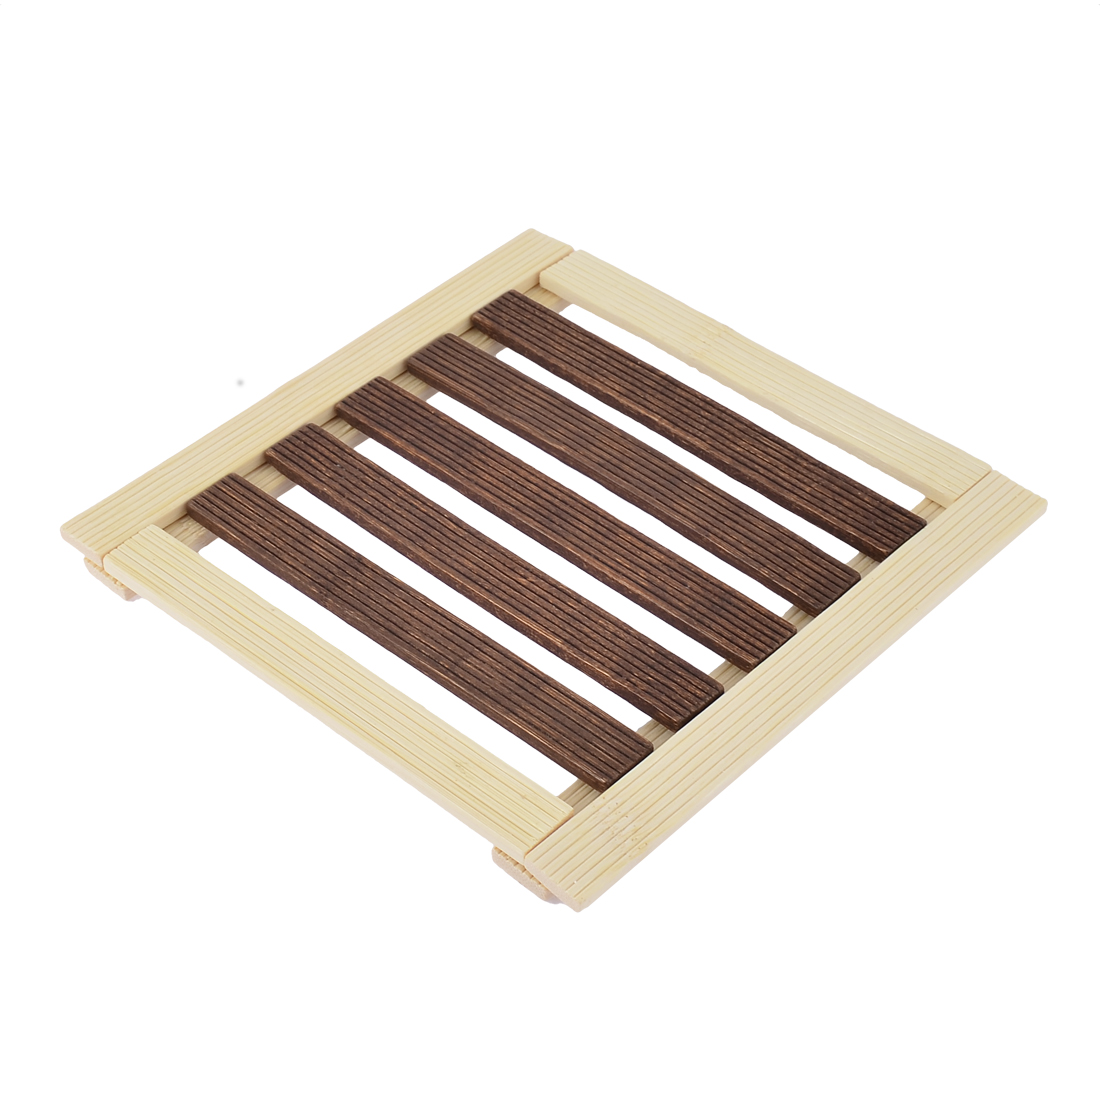 Kitchen Table Dishes Bamboo Insulation Mat Coasters Beige Brown 17 x 17cm